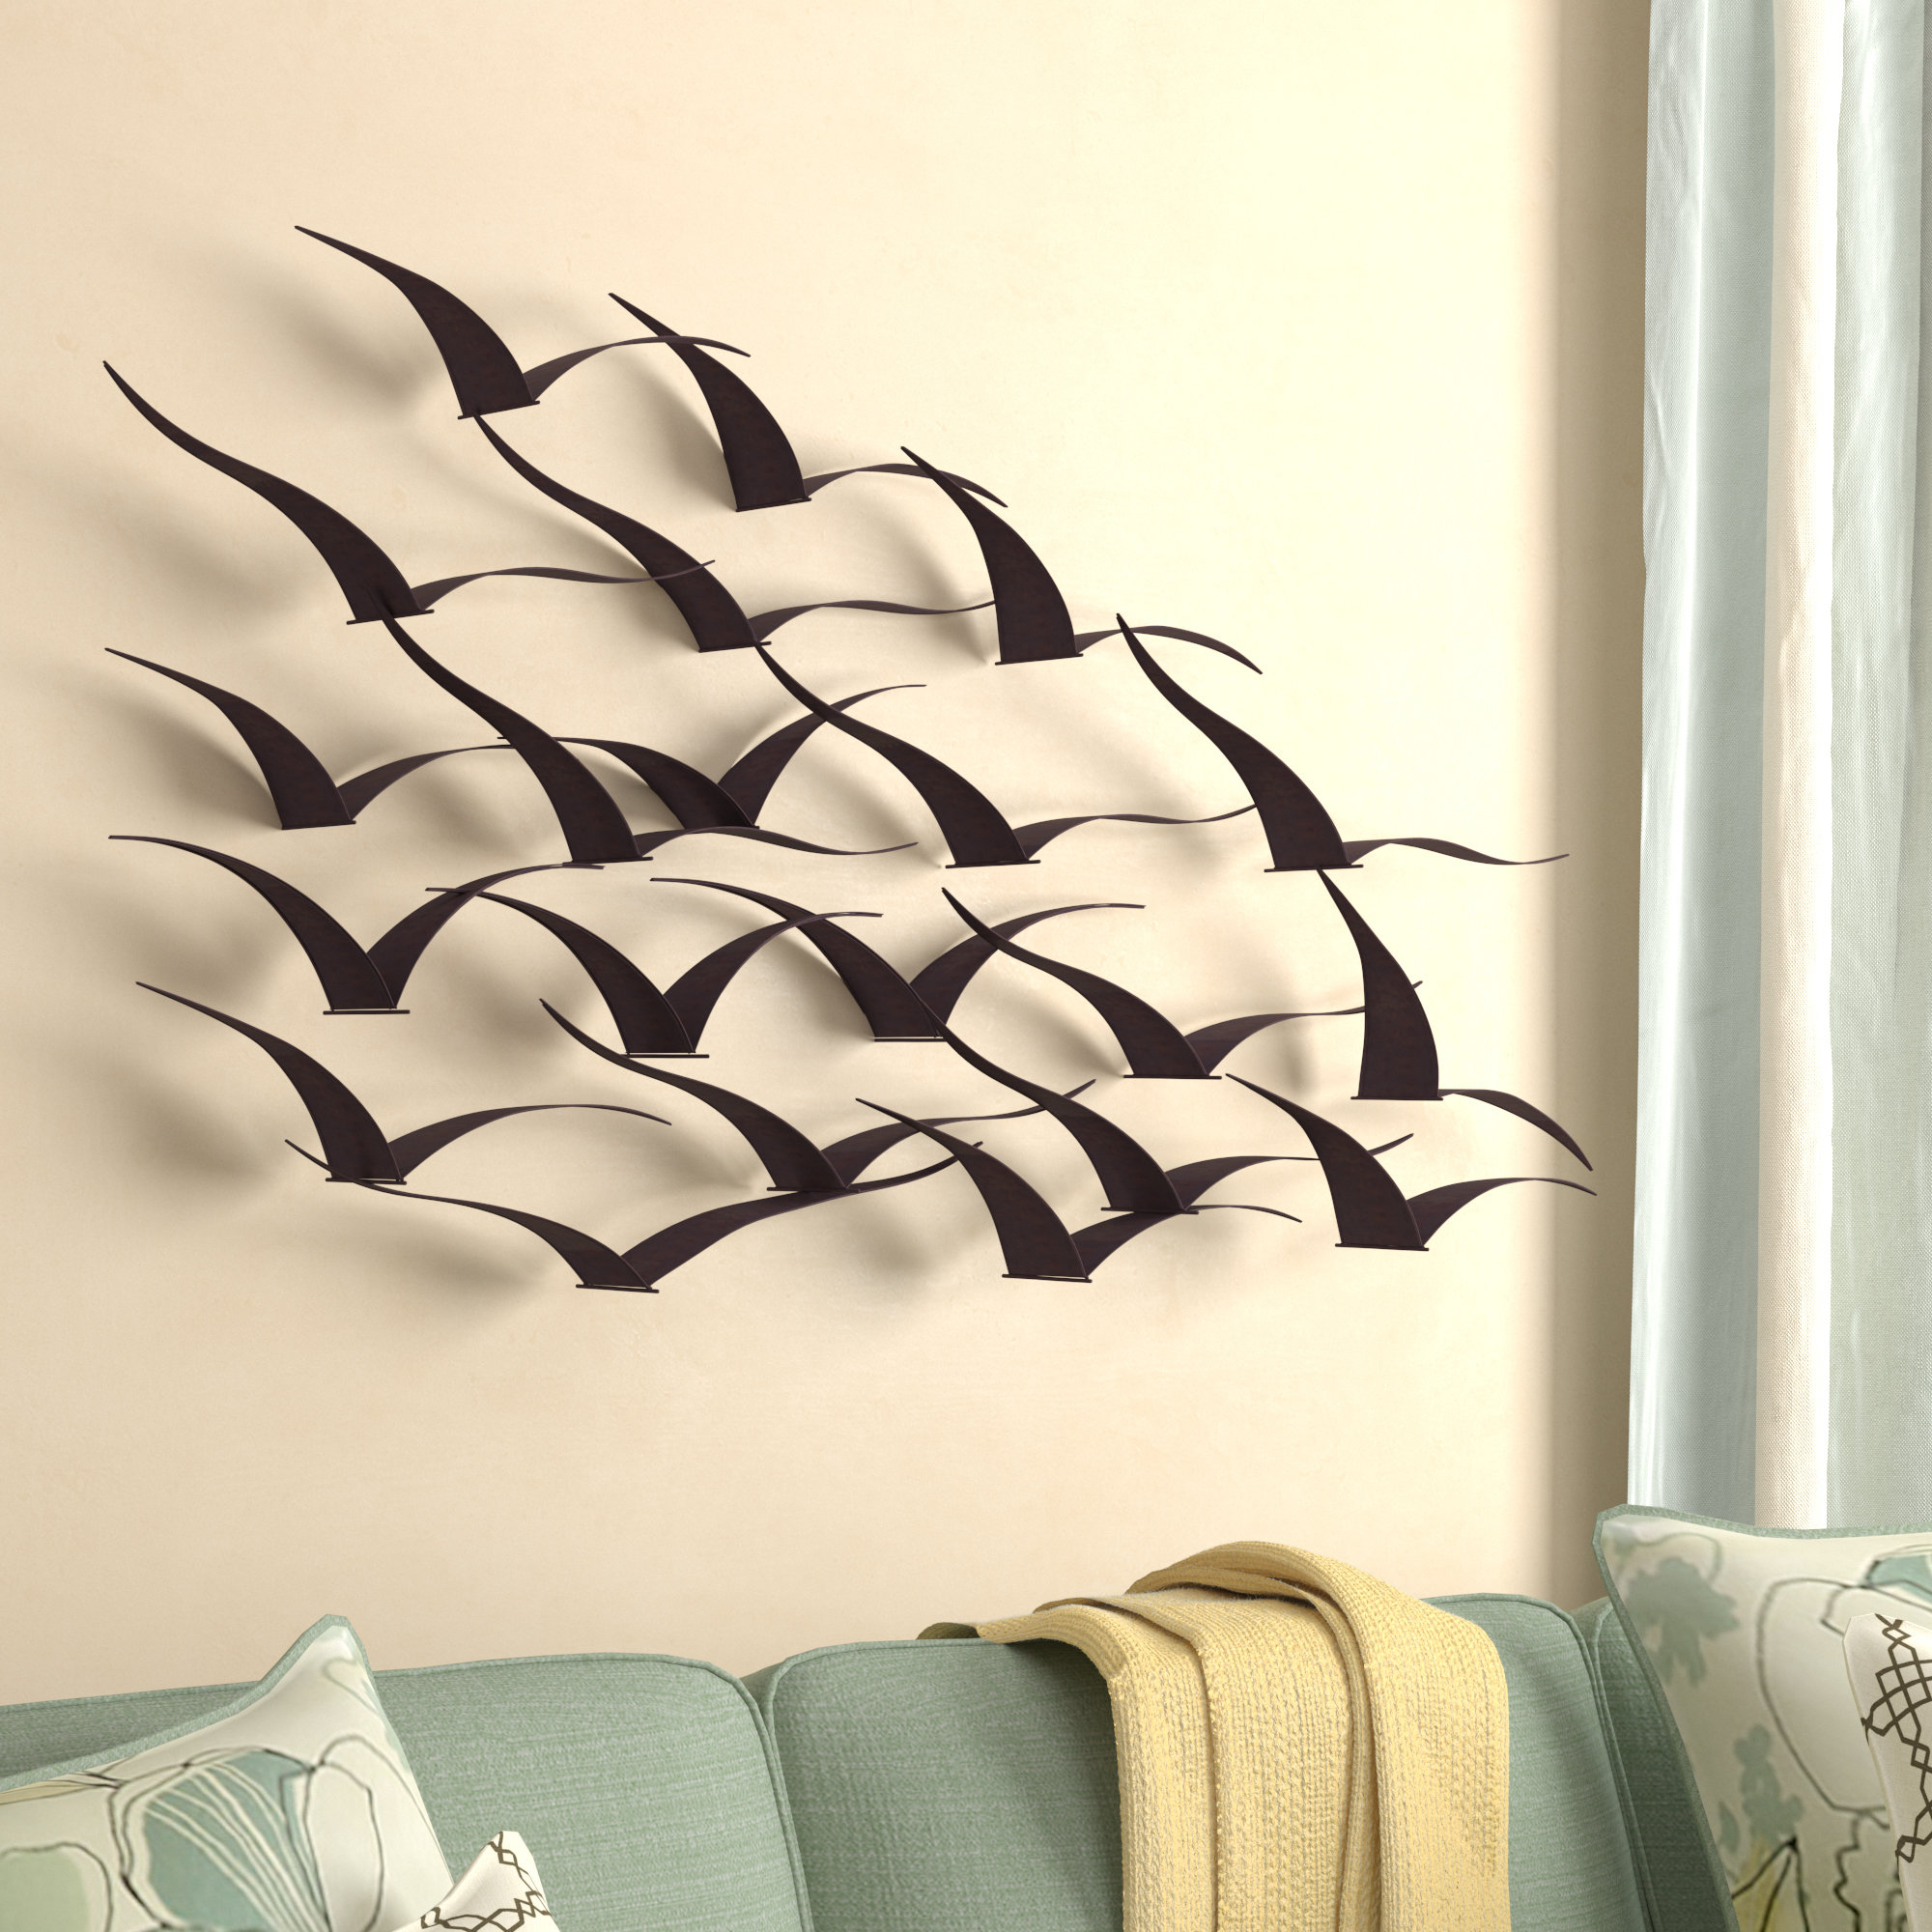 Wall Decor For Bedroom | Wayfair For Dance Of Desire Wall Decor (View 7 of 30)